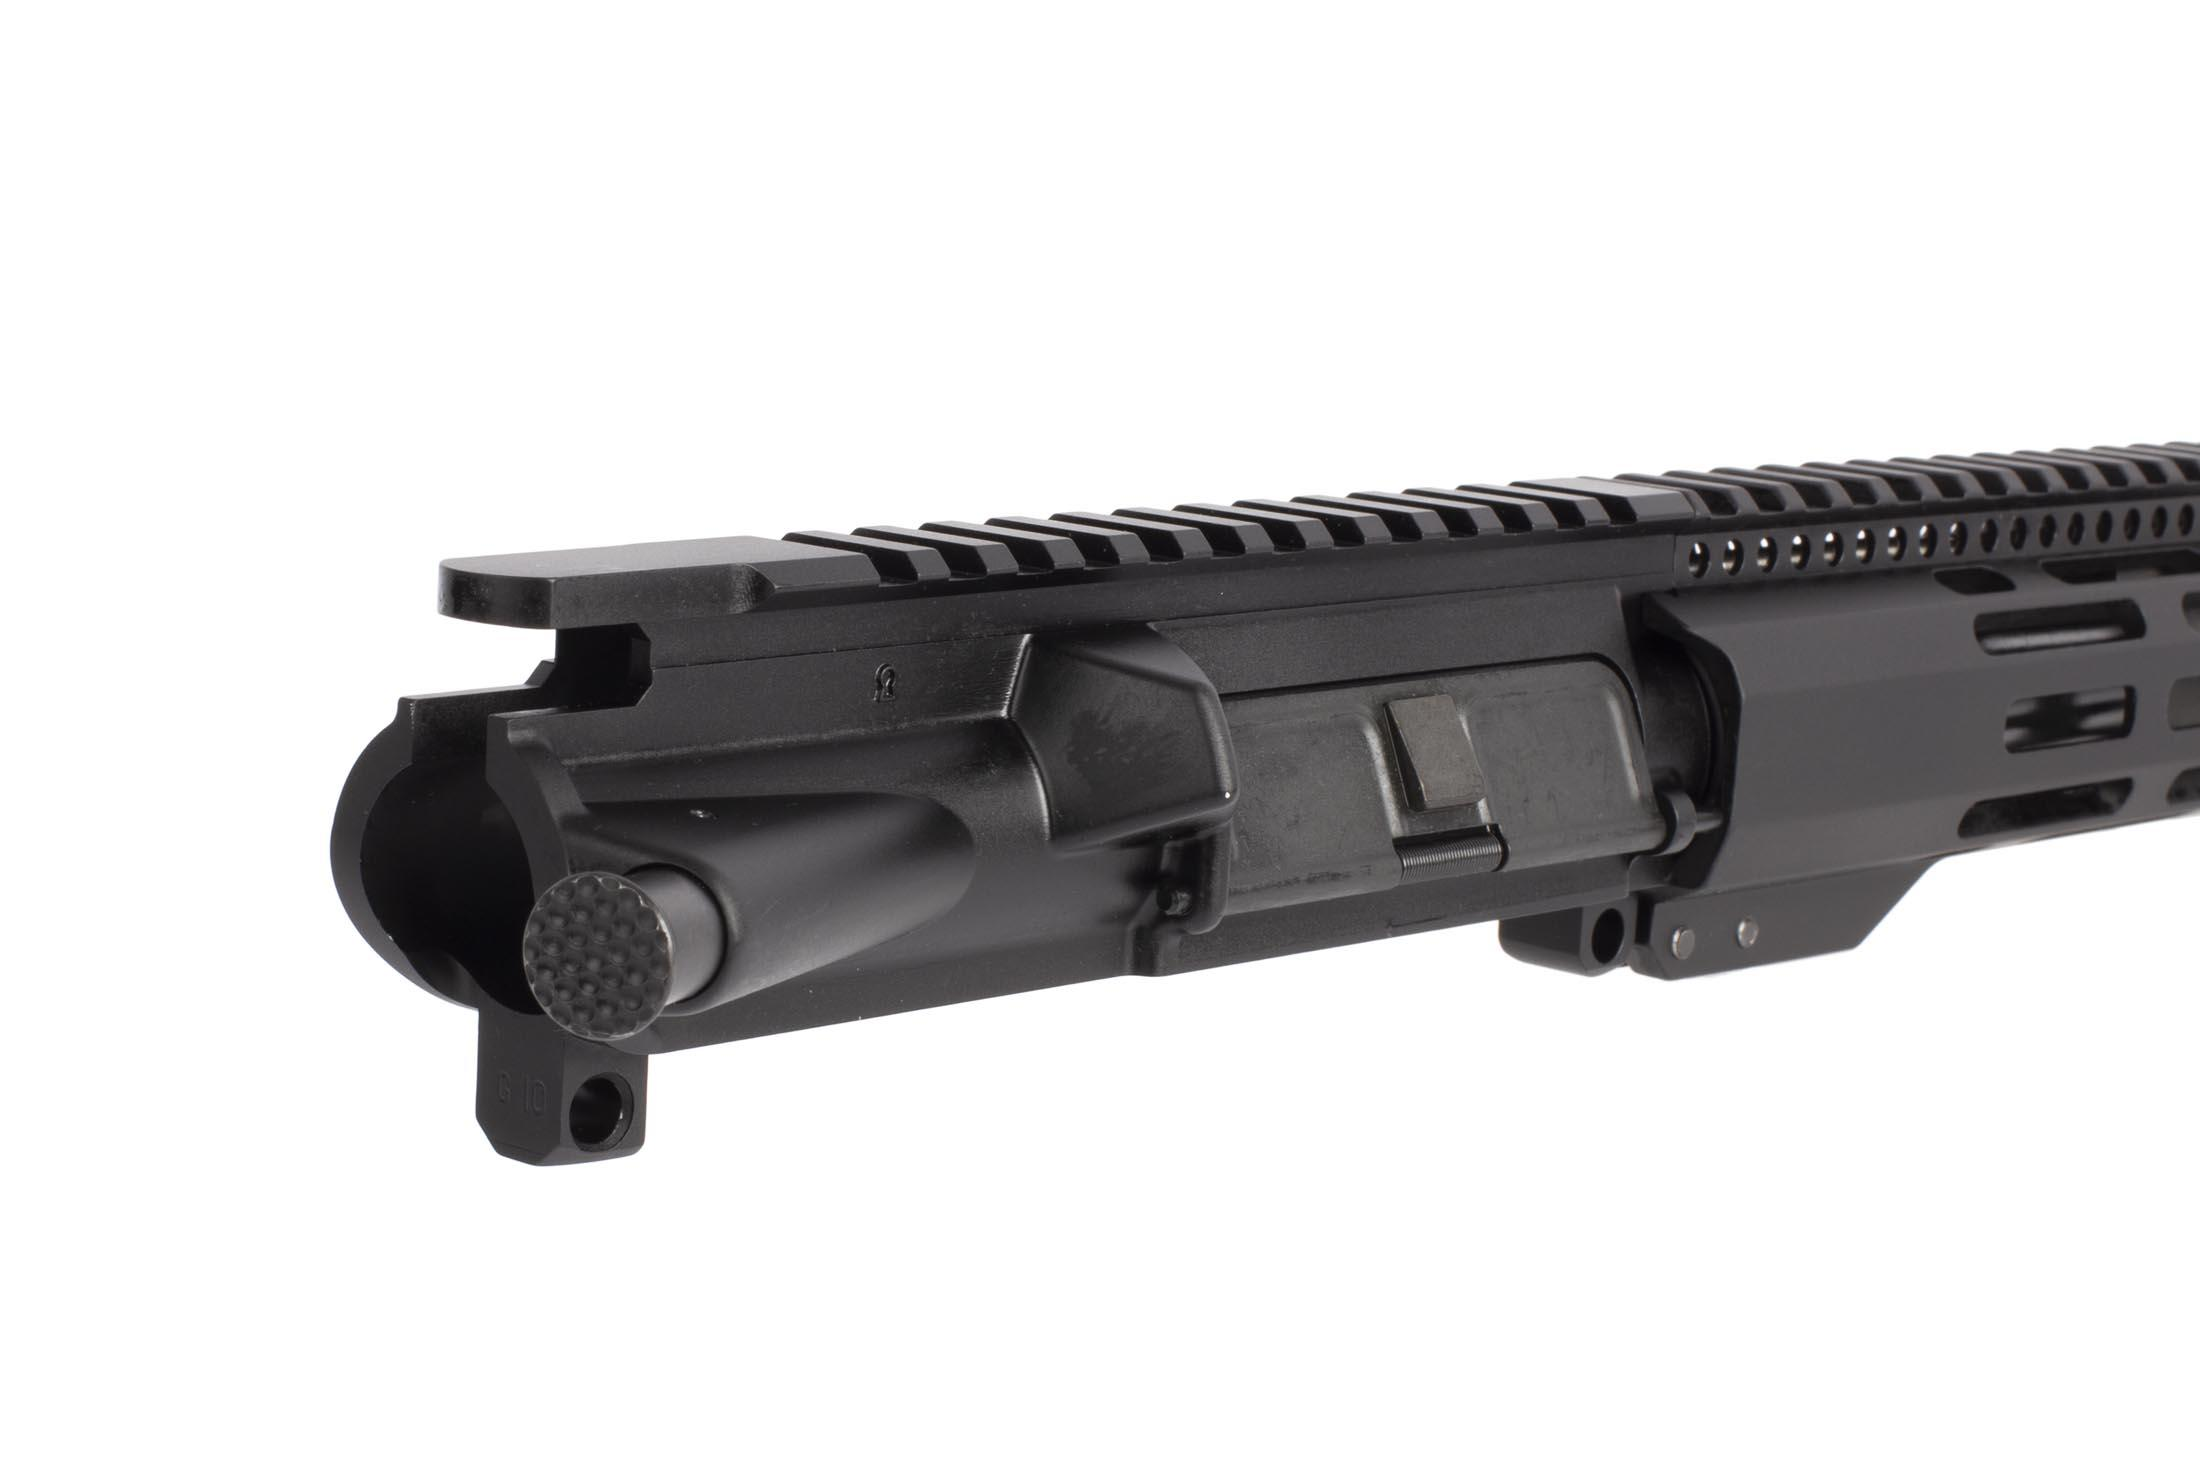 Radical Firearms 8.5 inch 300 BLK barreled AR15 upper receiver is ready for your favorite BCG and charging handle